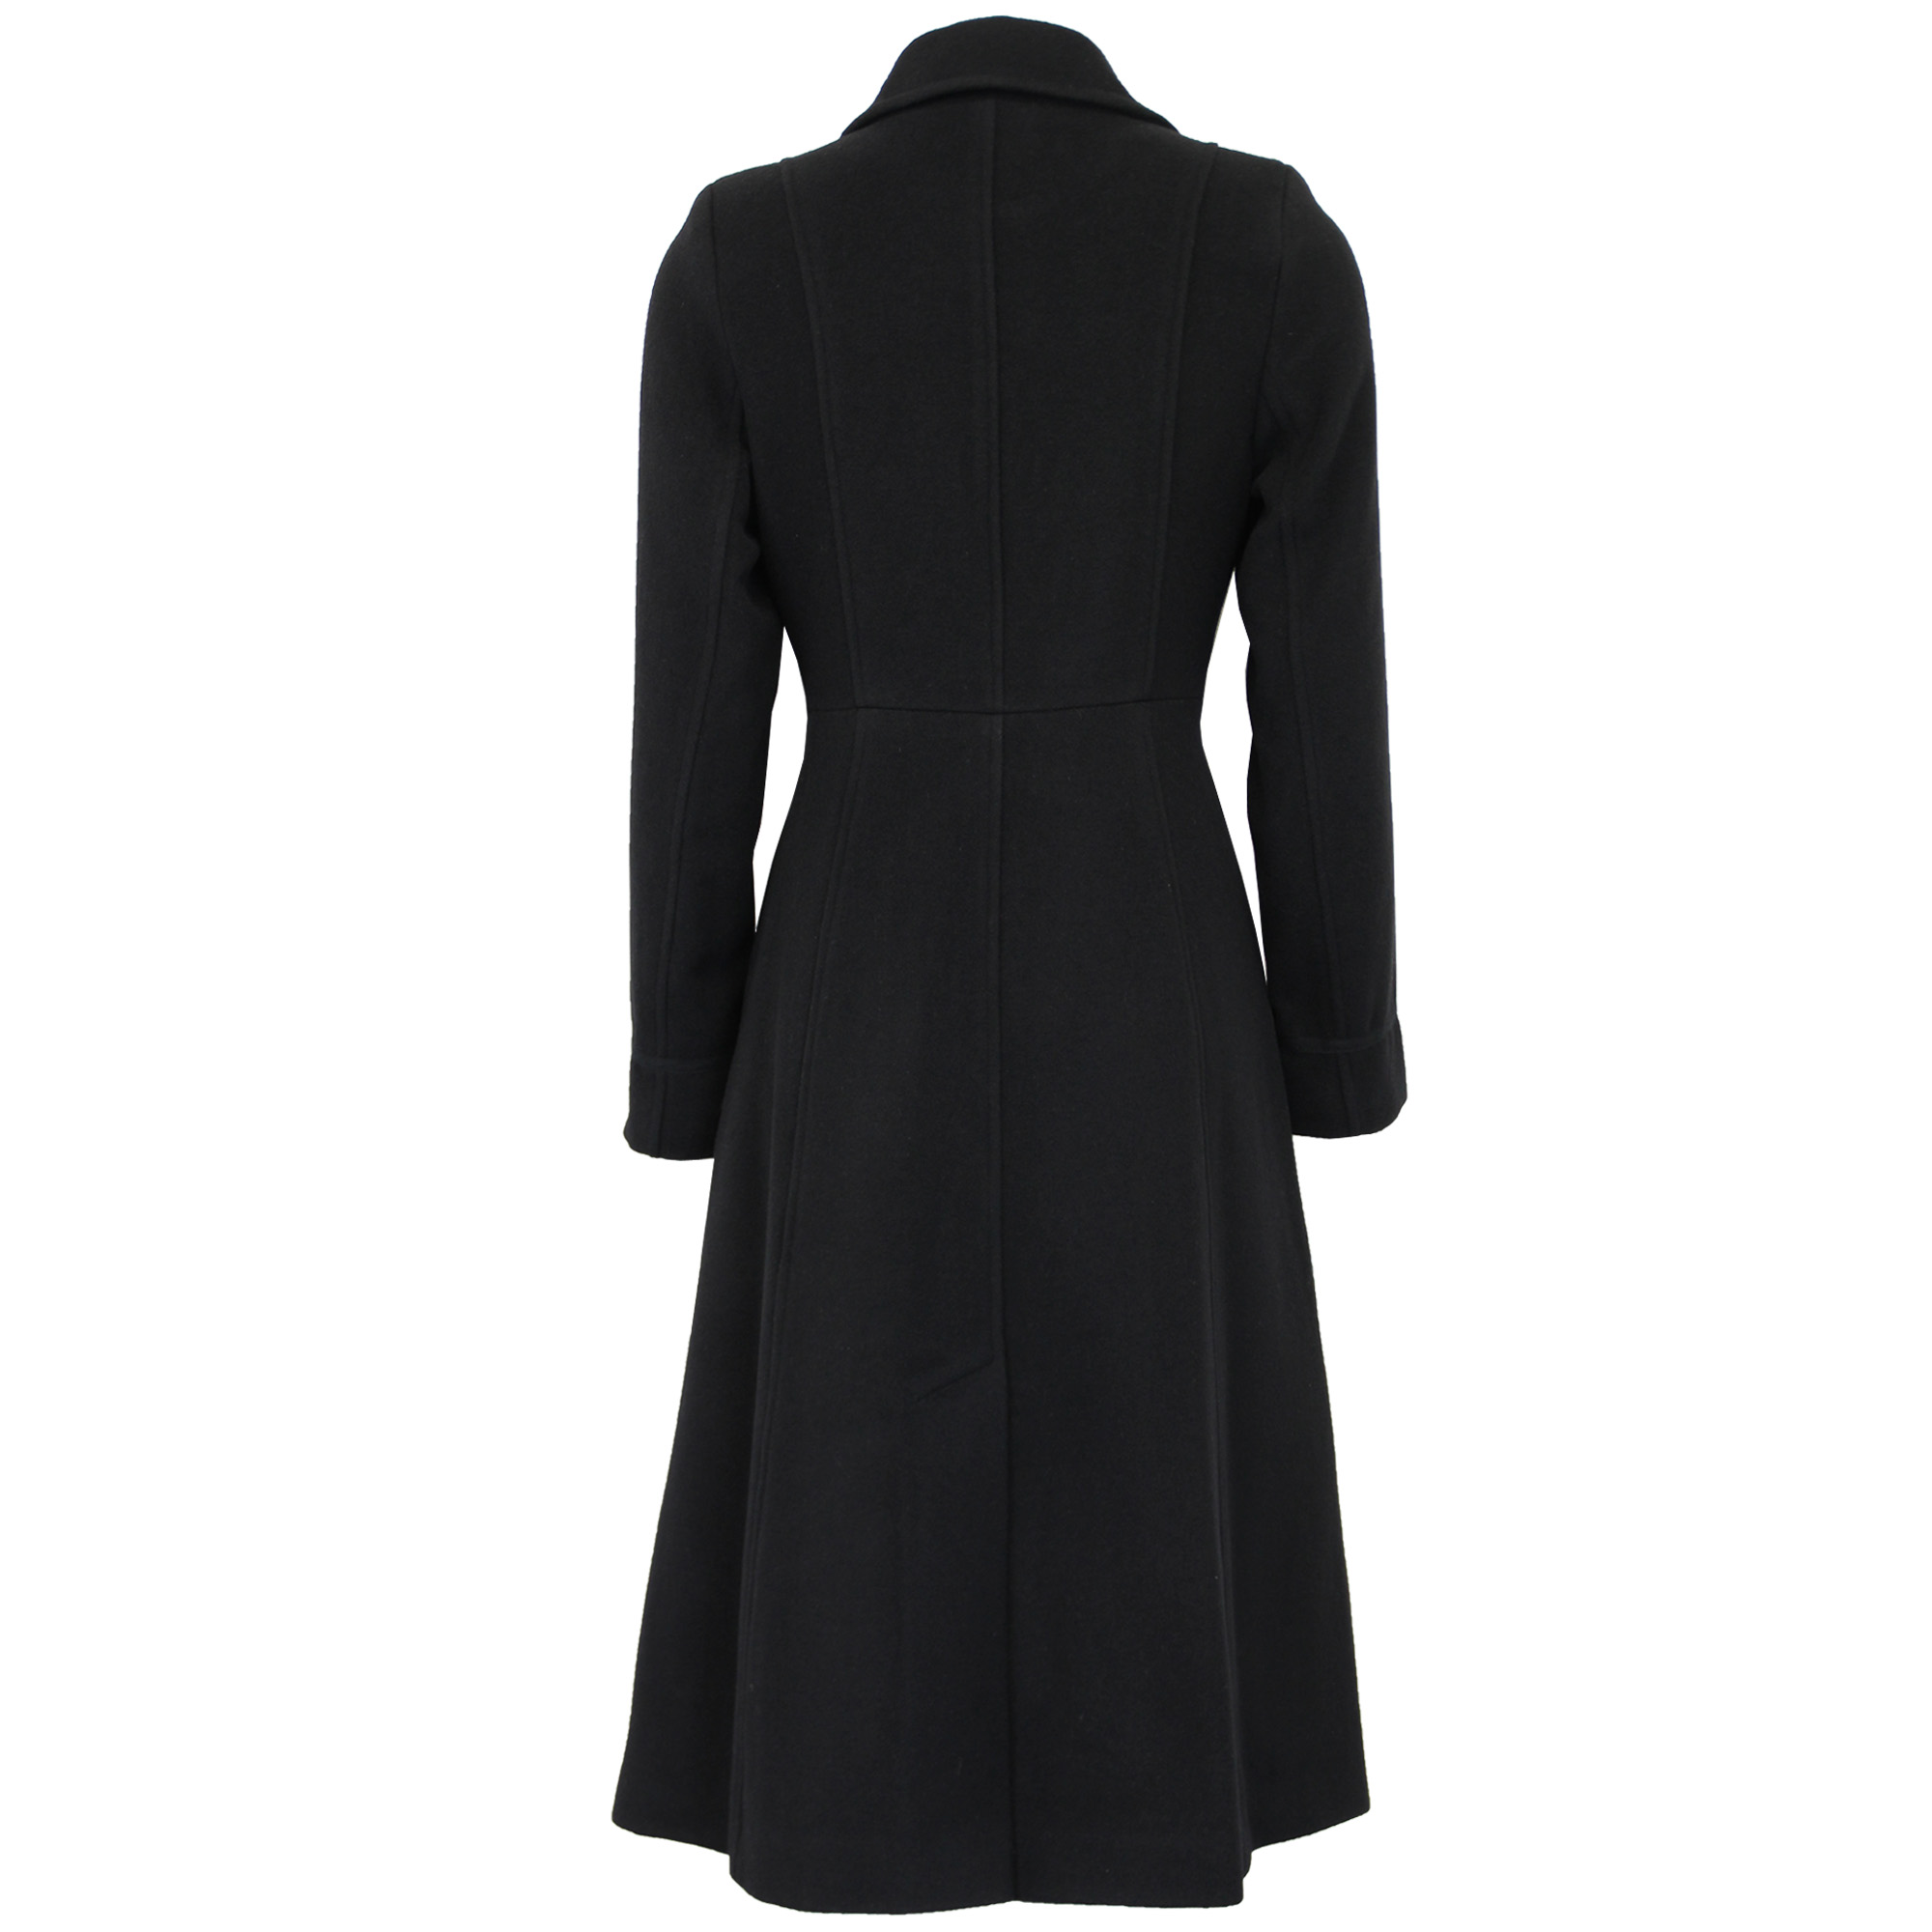 Ladies Wool Cashmere Coat Womens Jacket Outerwear Trench ...